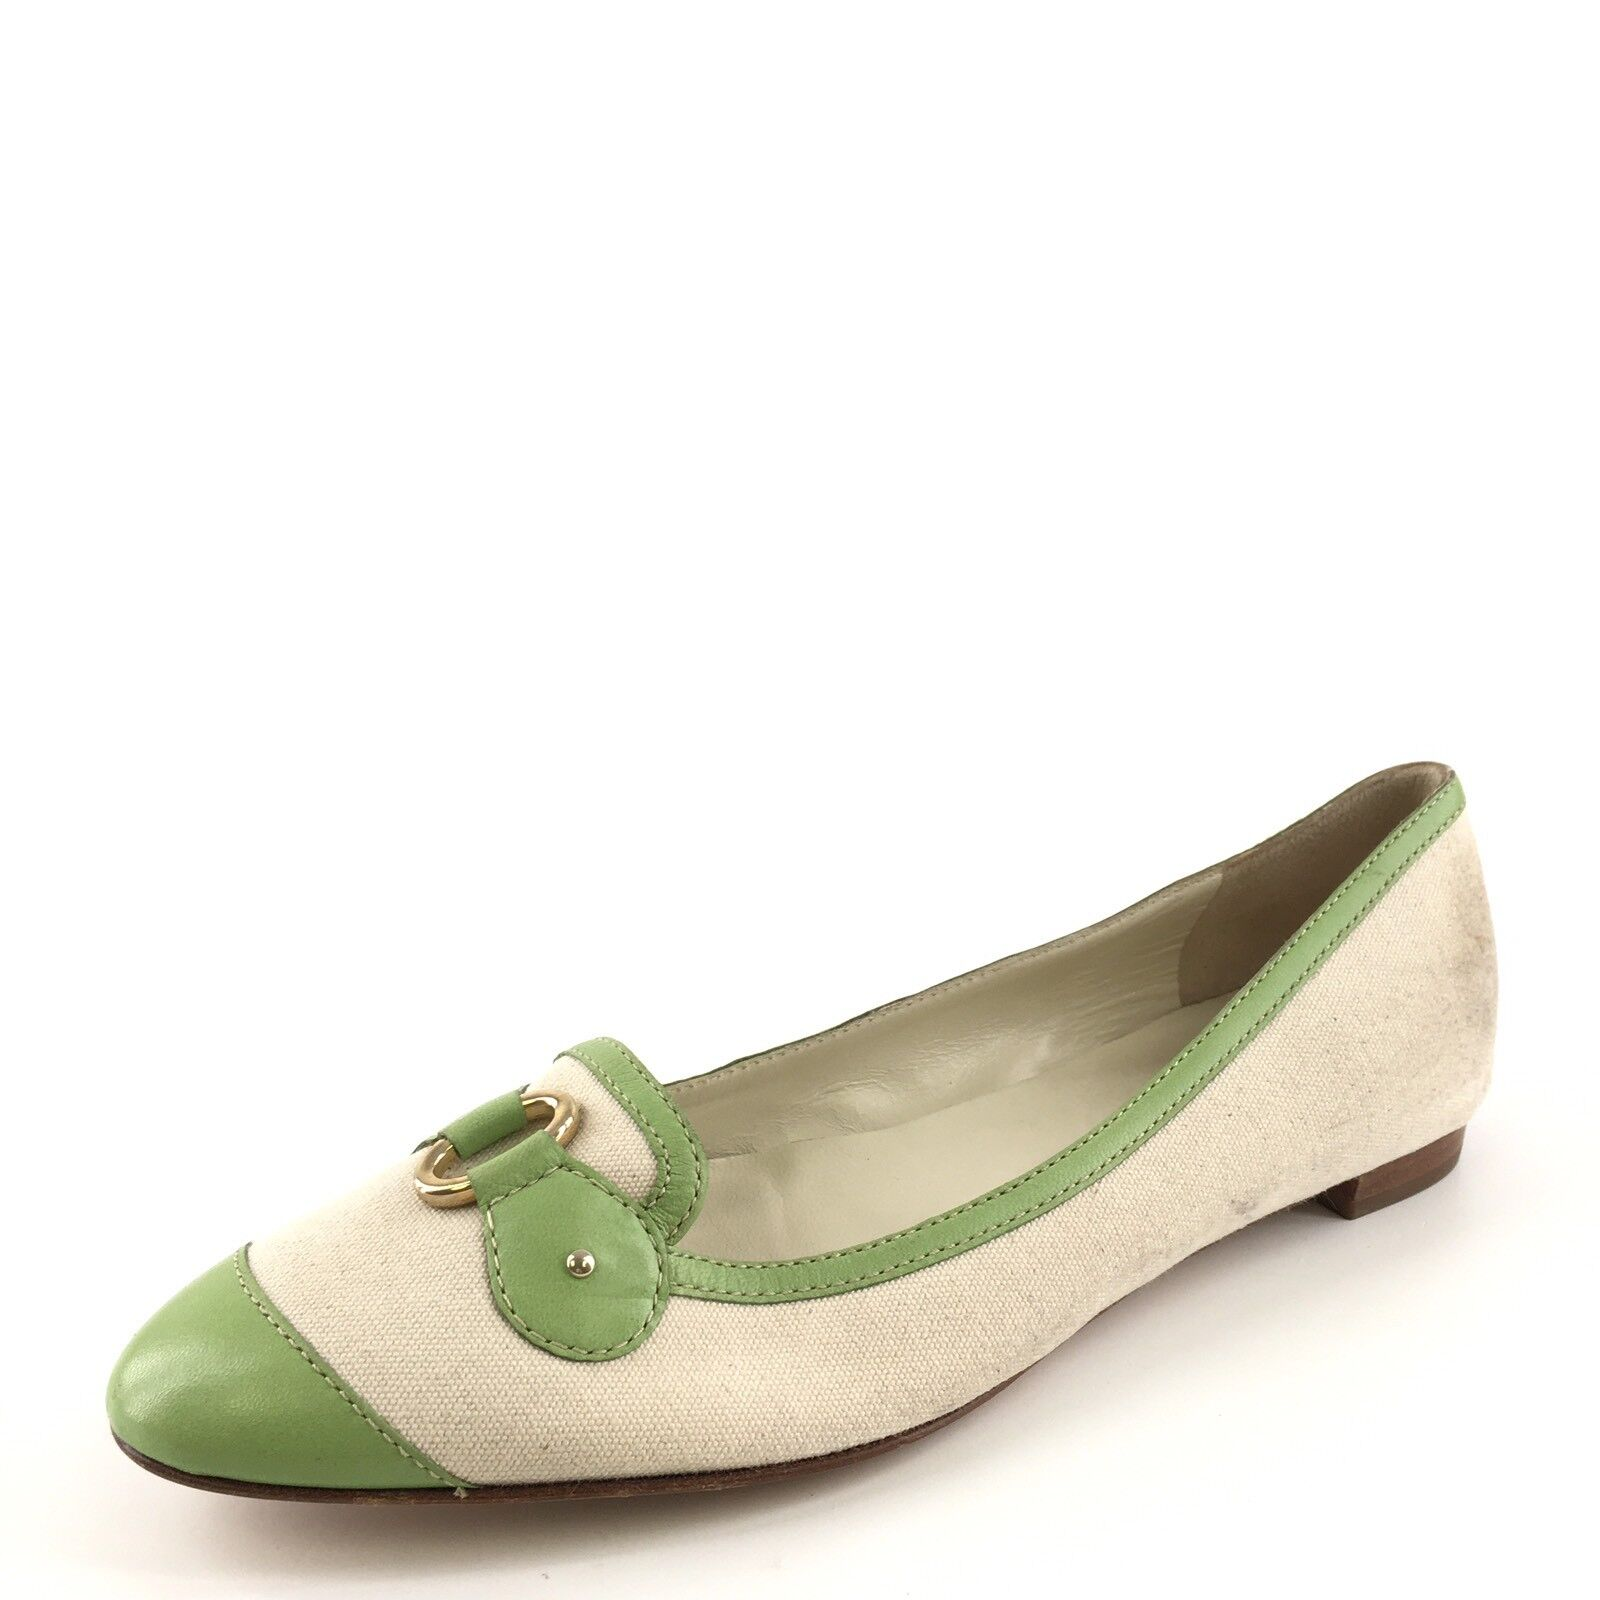 Bruno Magli Green Beige Canvas Pointy For Flats Women's Size 35 M